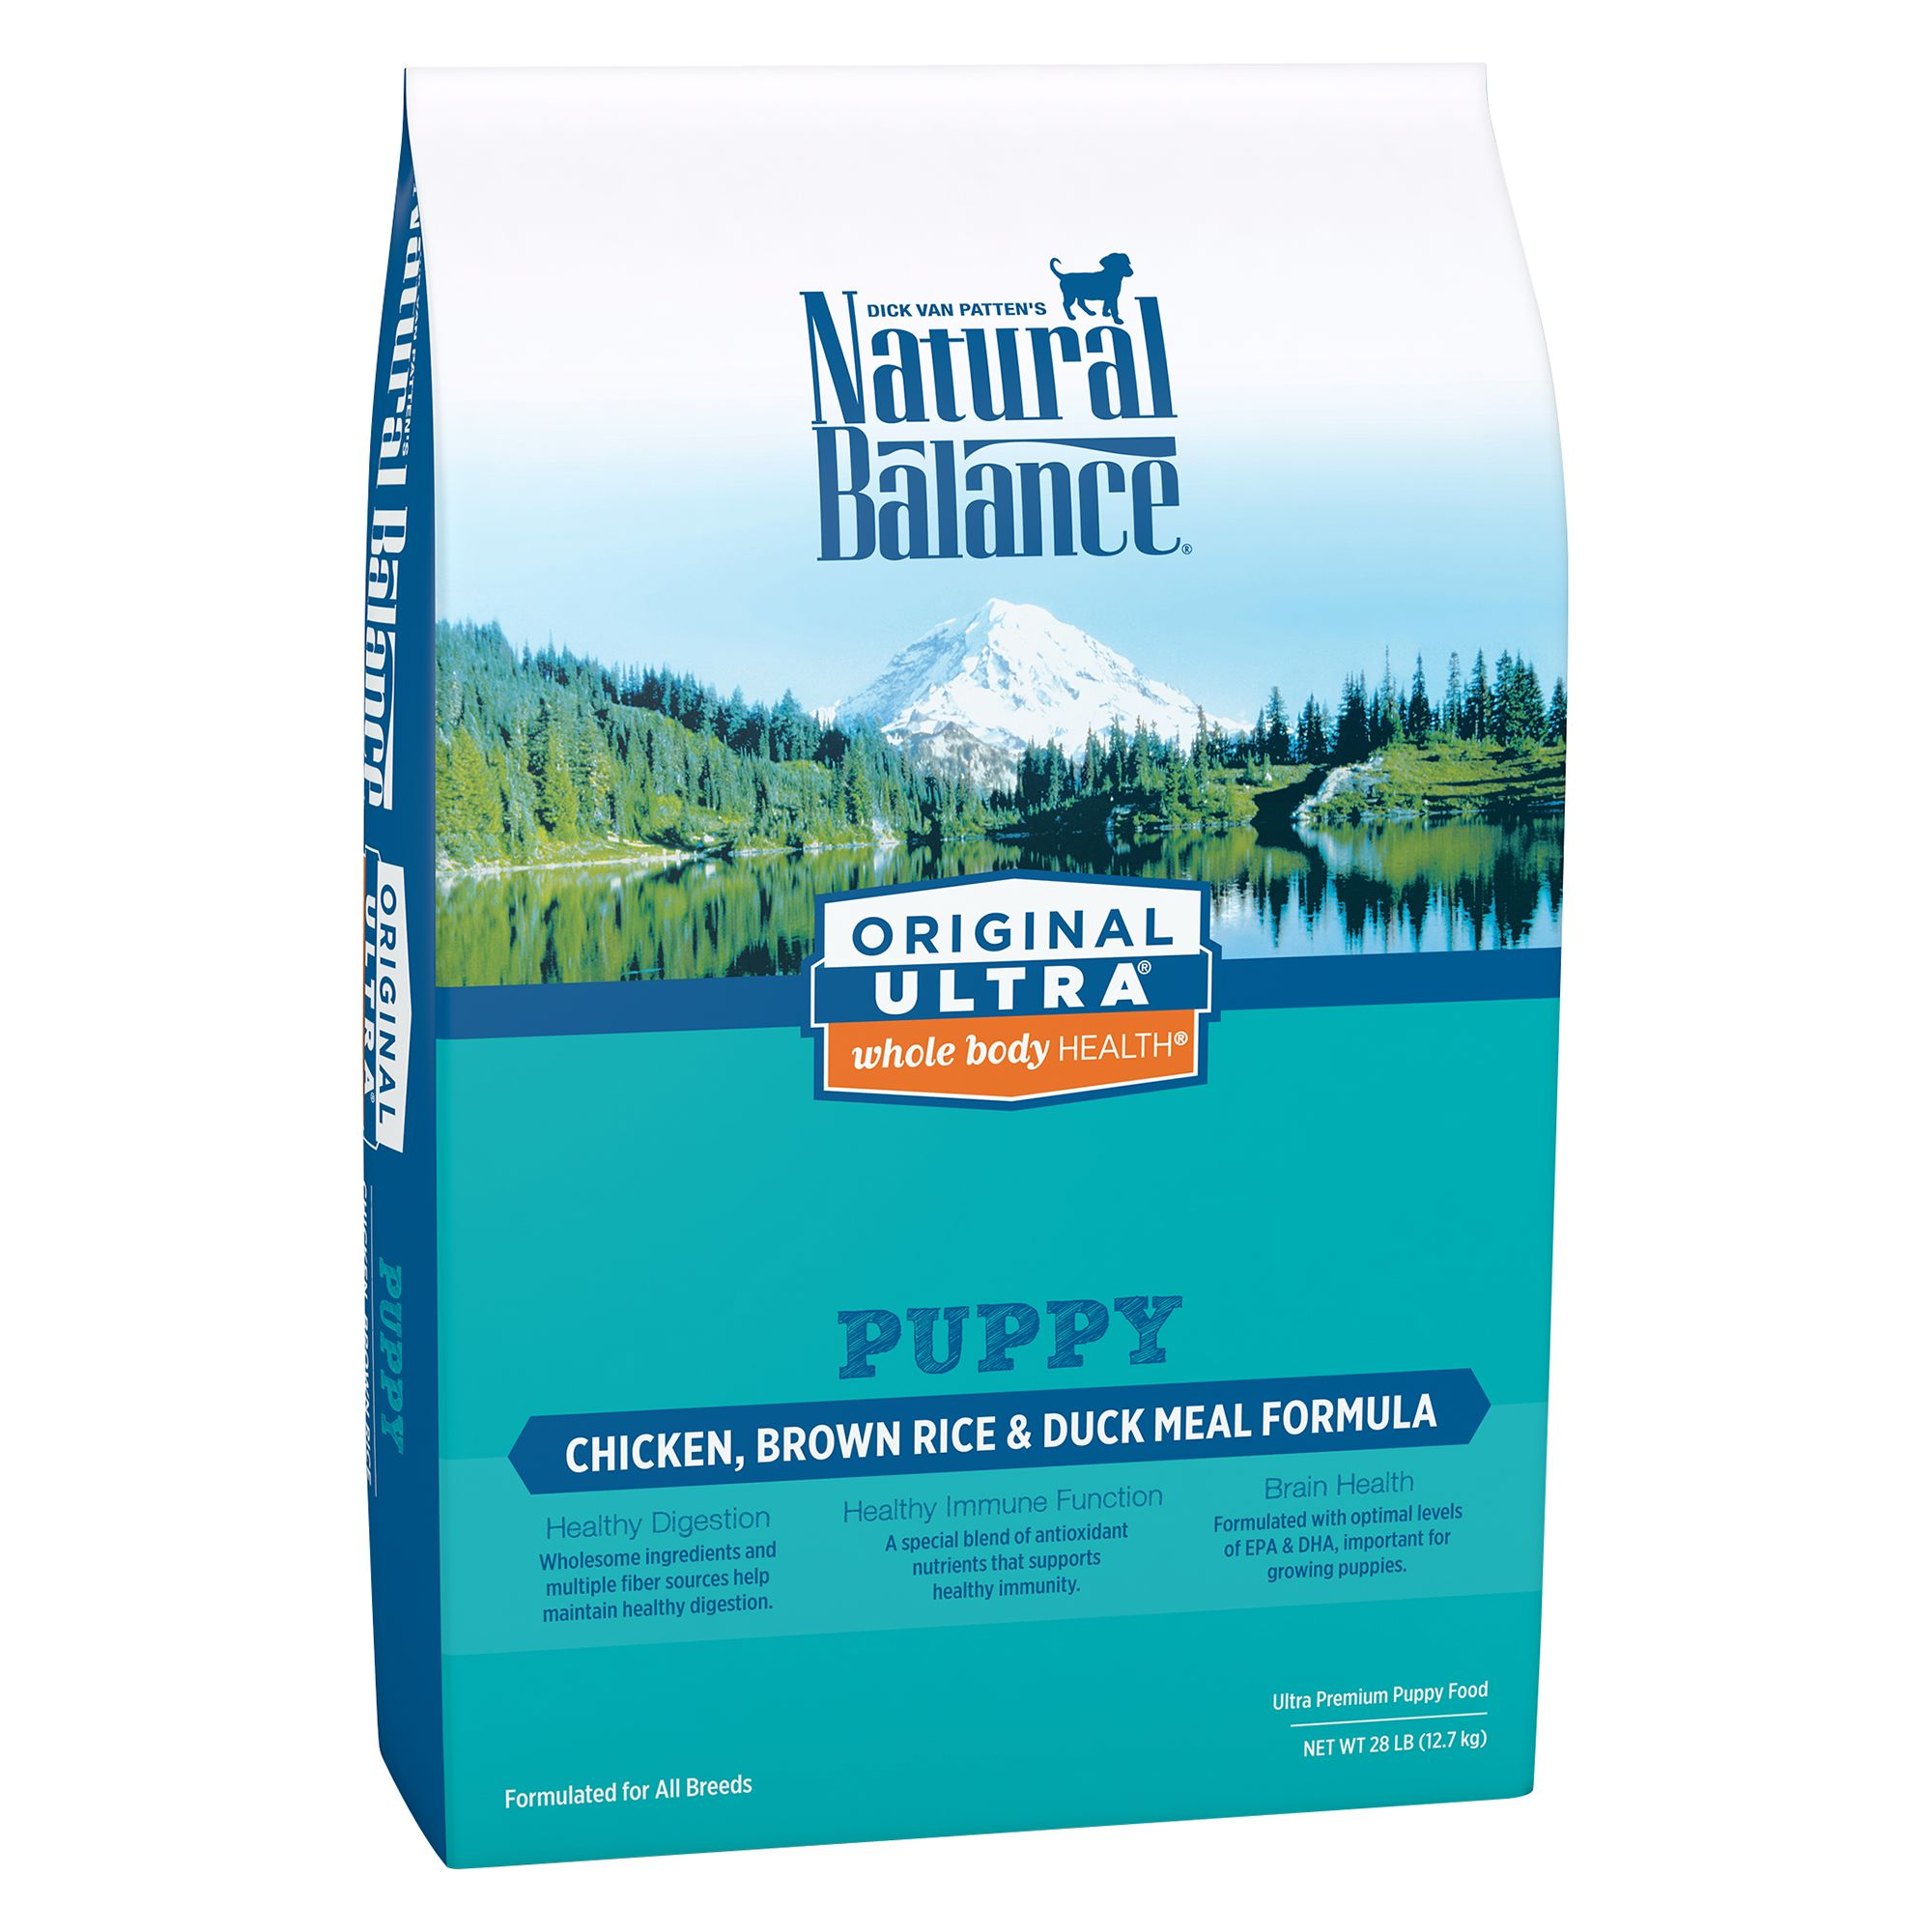 Natural Balance Original Ultra Whole Body Health Puppy Food- Gluten Free, Chicken, Brown Rice and Duck size: 28 Lb 5235169